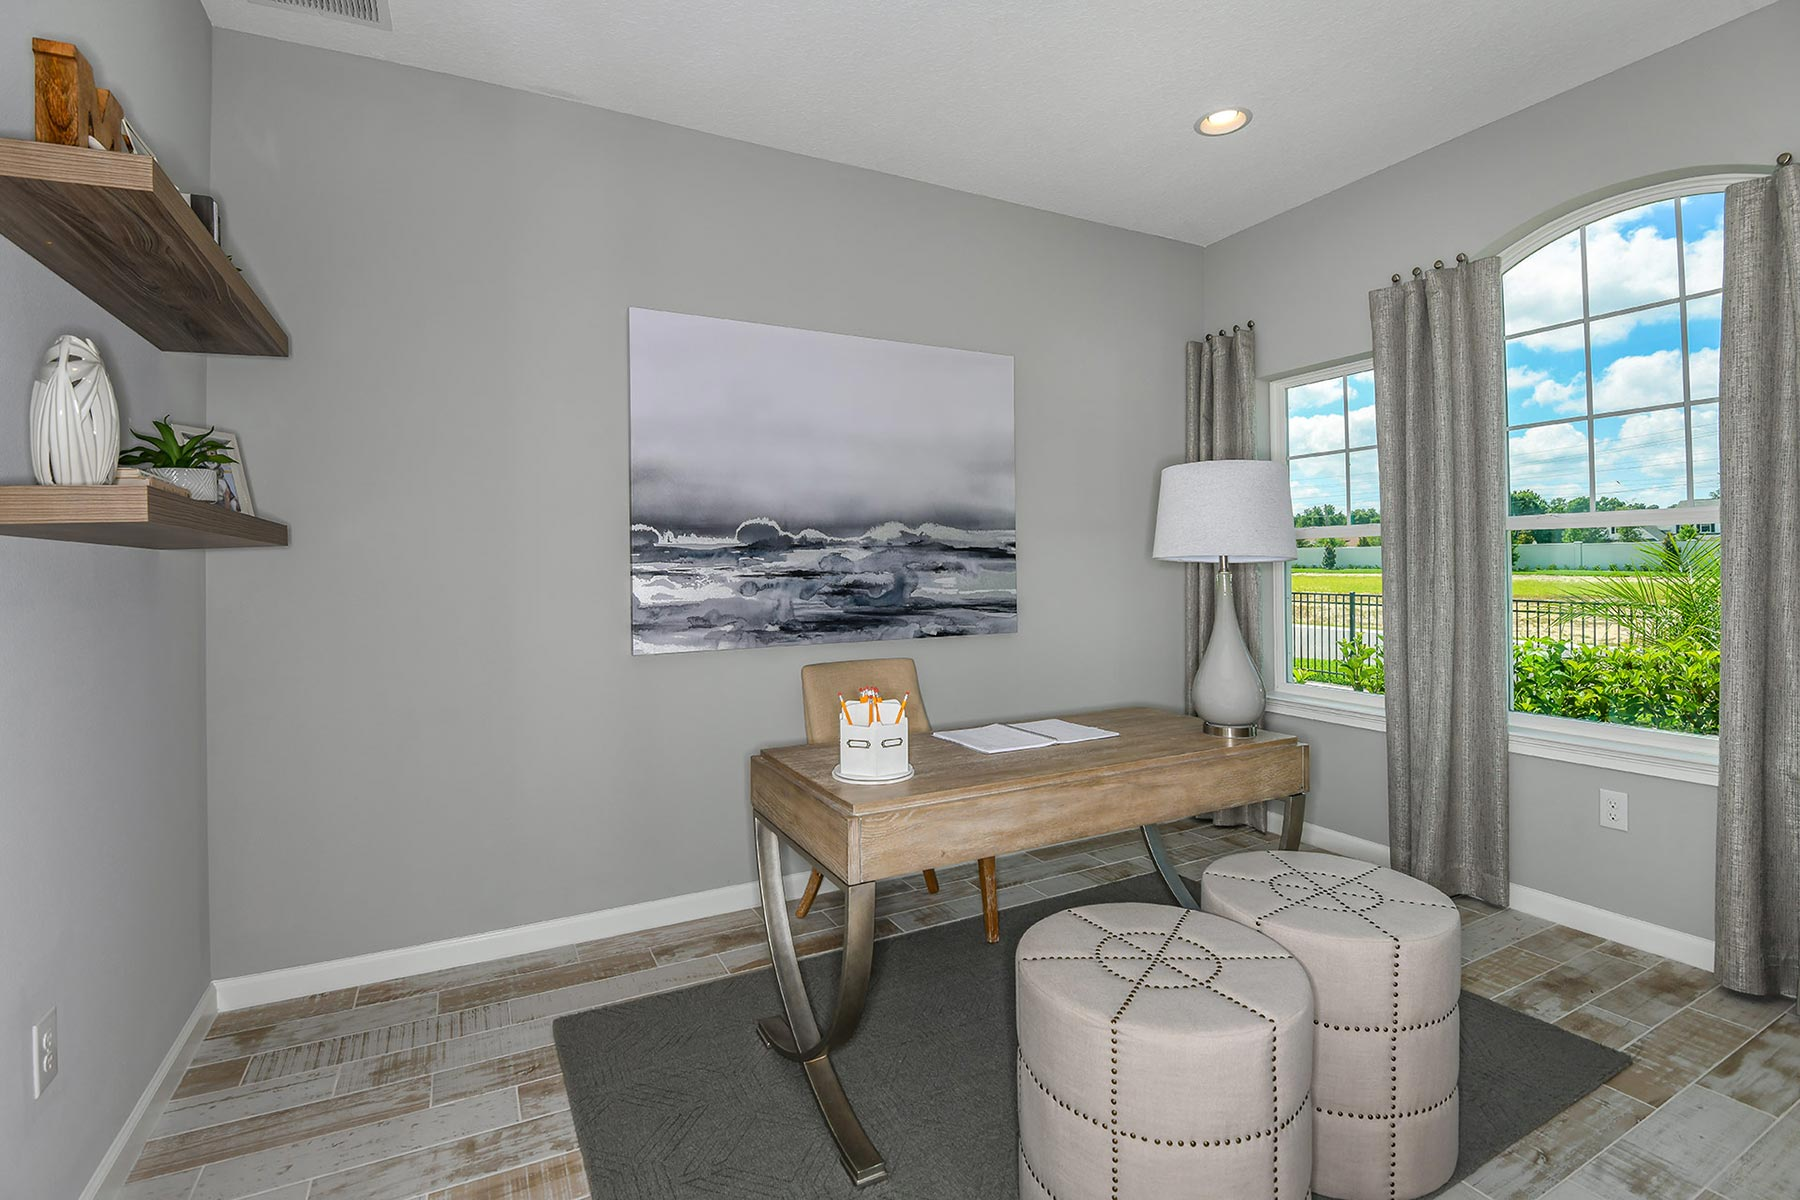 Coquina II Plan Study Room at Wellen Park - Renaissance in Venice Florida by Mattamy Homes